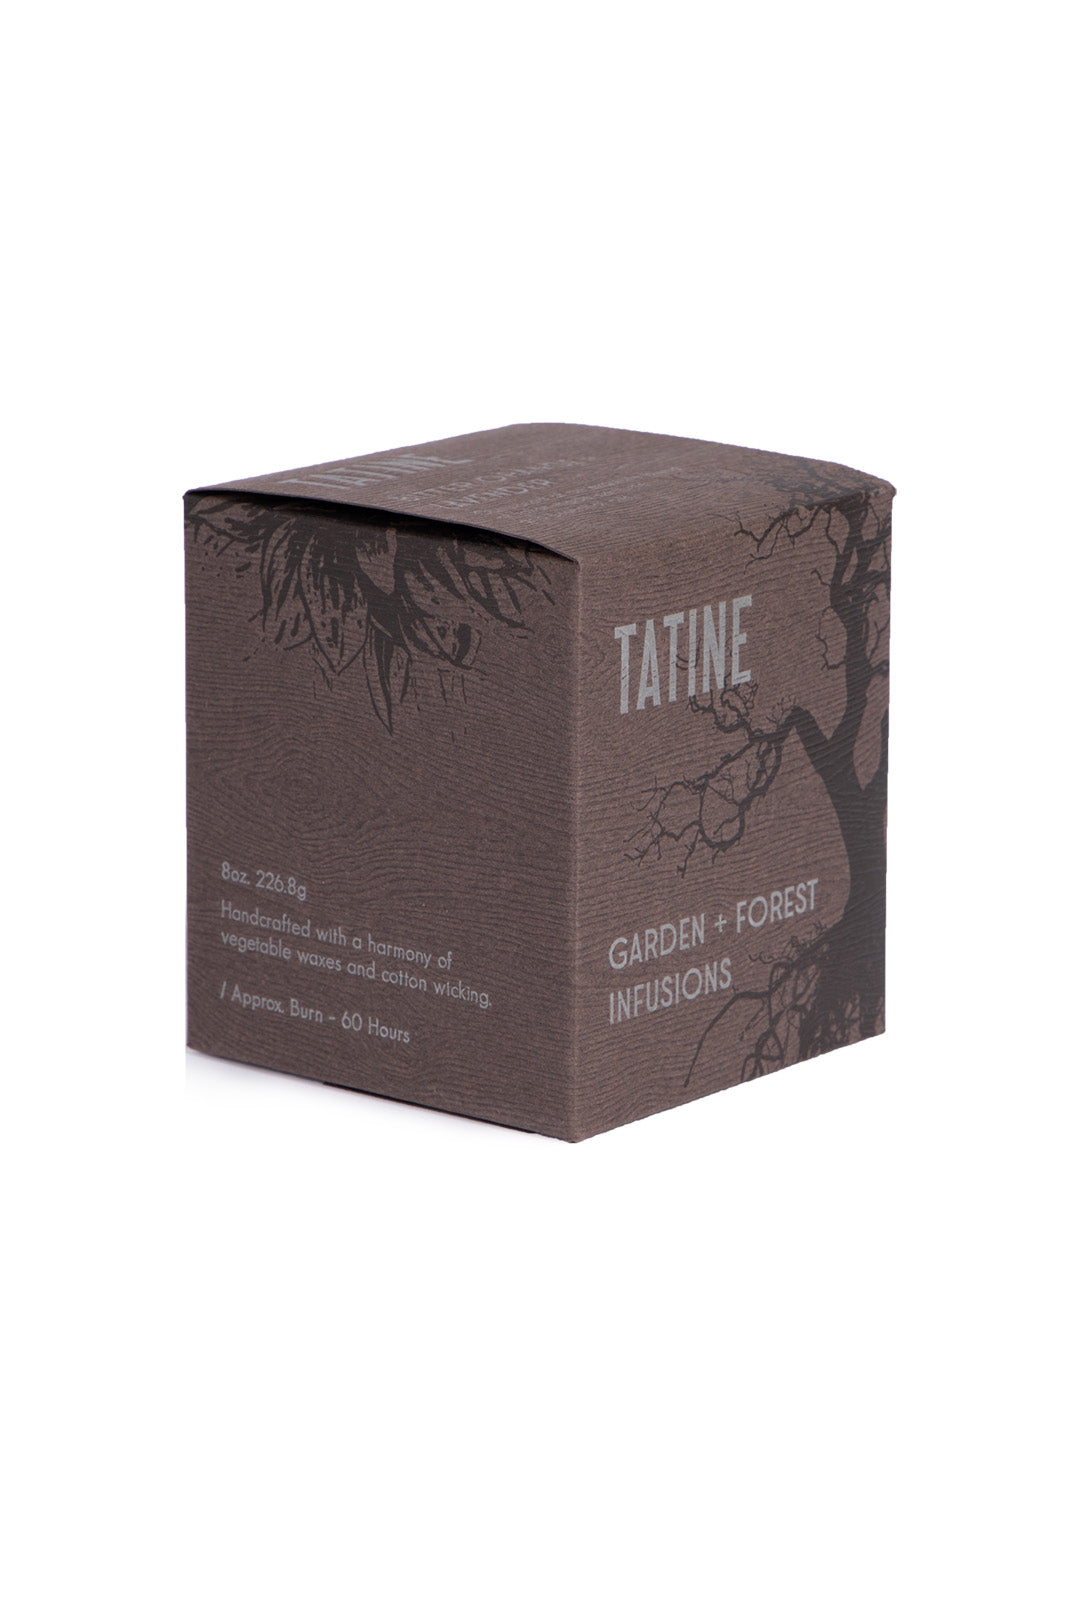 Tatine - Scented Candle - Garden and Forest Infusions Collection - Bitter Orange and Lavender